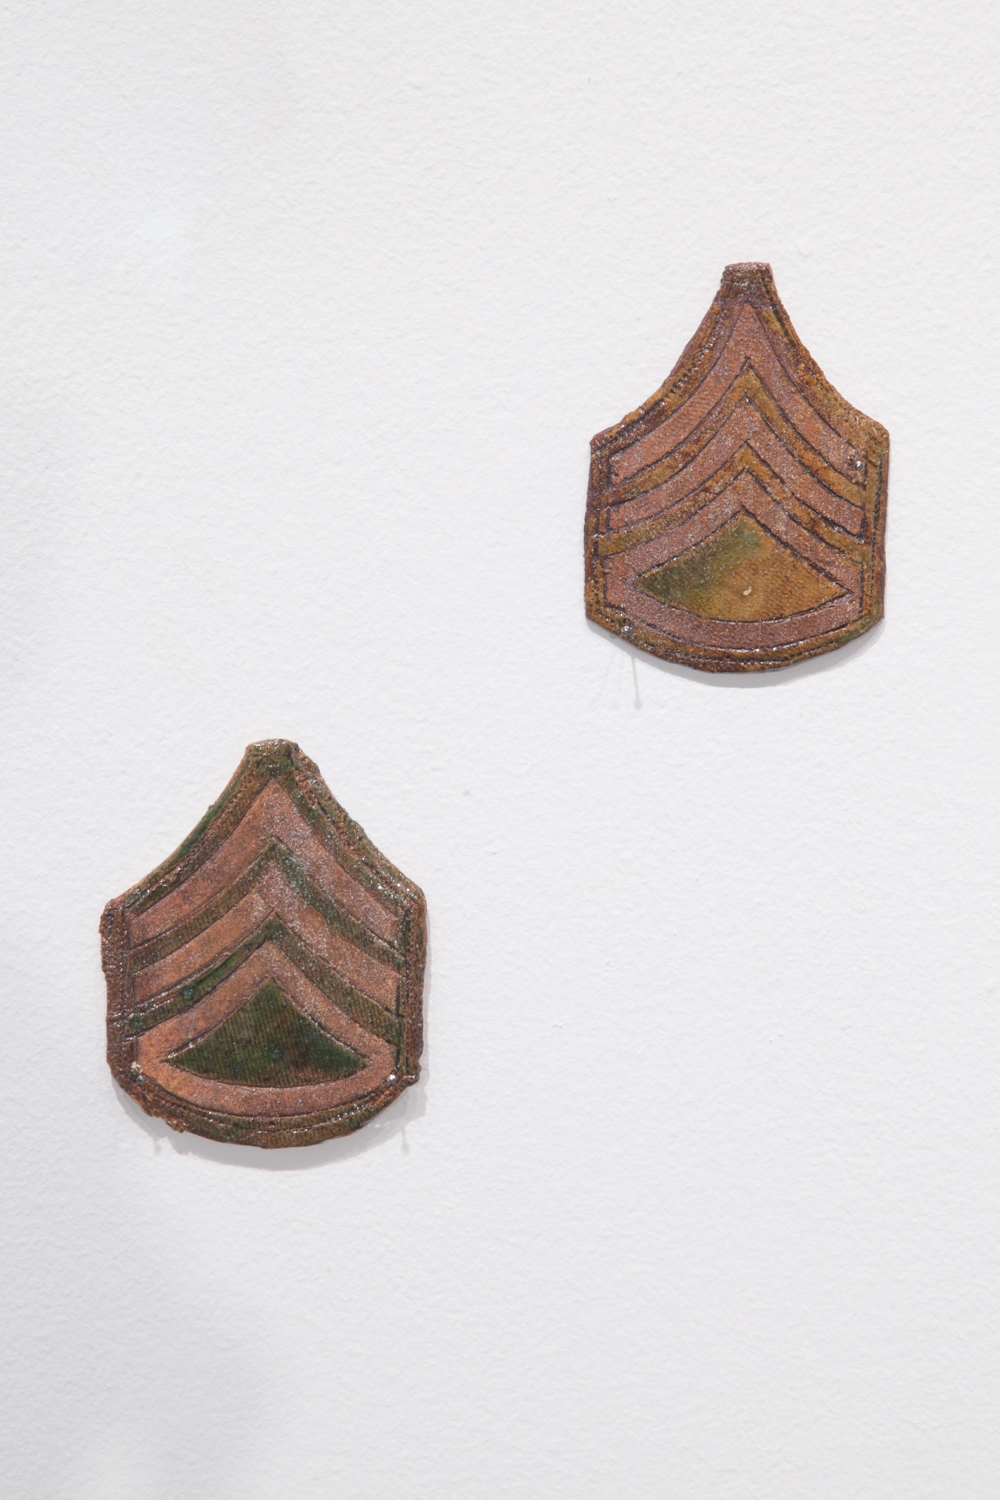 Claire Shurley     Army Patches     reclaimed stoneware, dirt from Shurley farmland,black stain, iron oxide, glaze, cone 6 oxidation